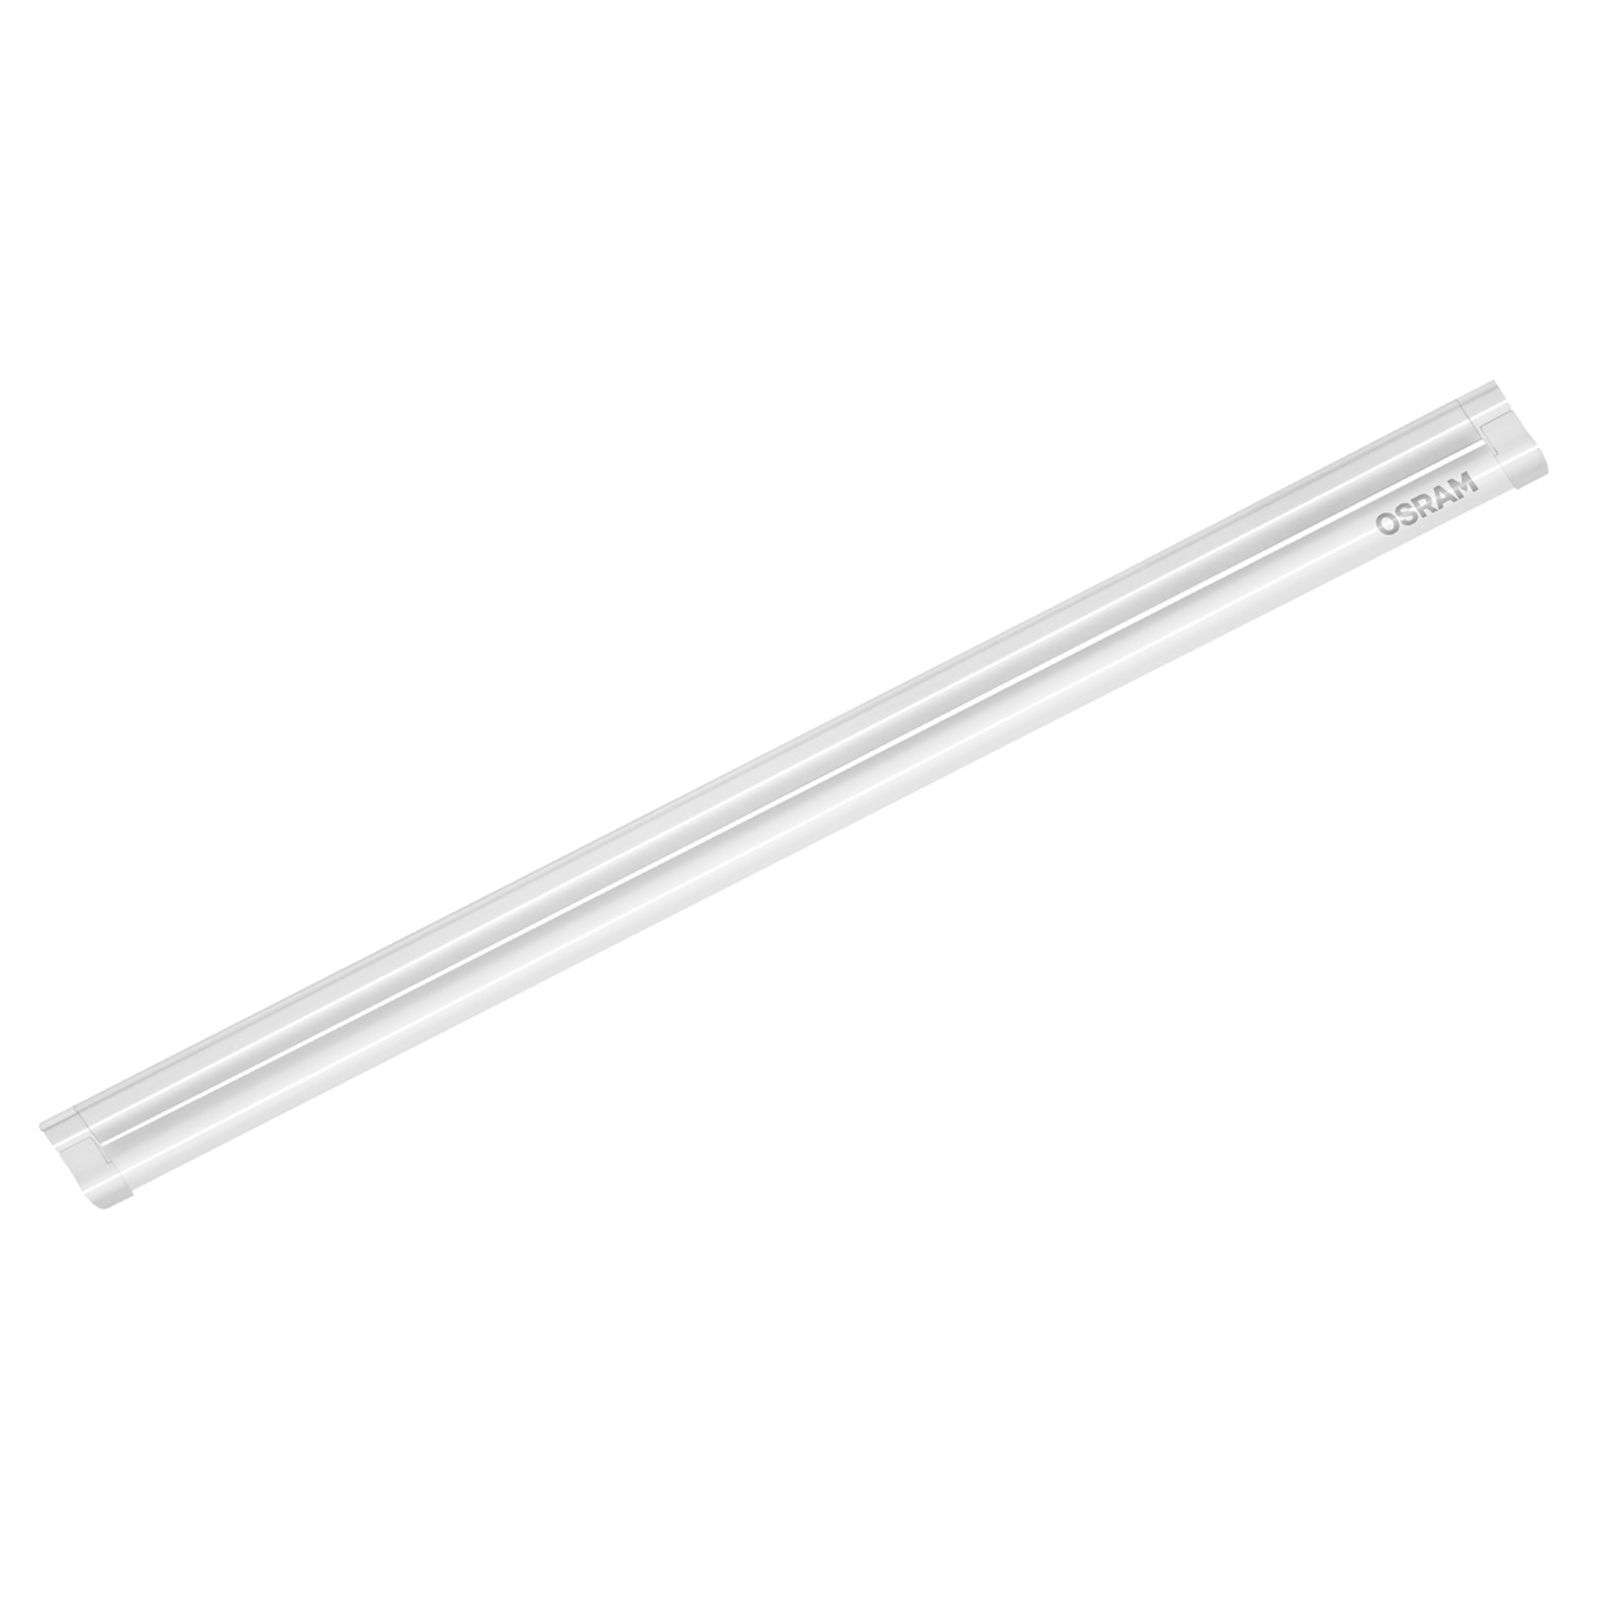 Supporto LED allungabile Light Batten 120 uw